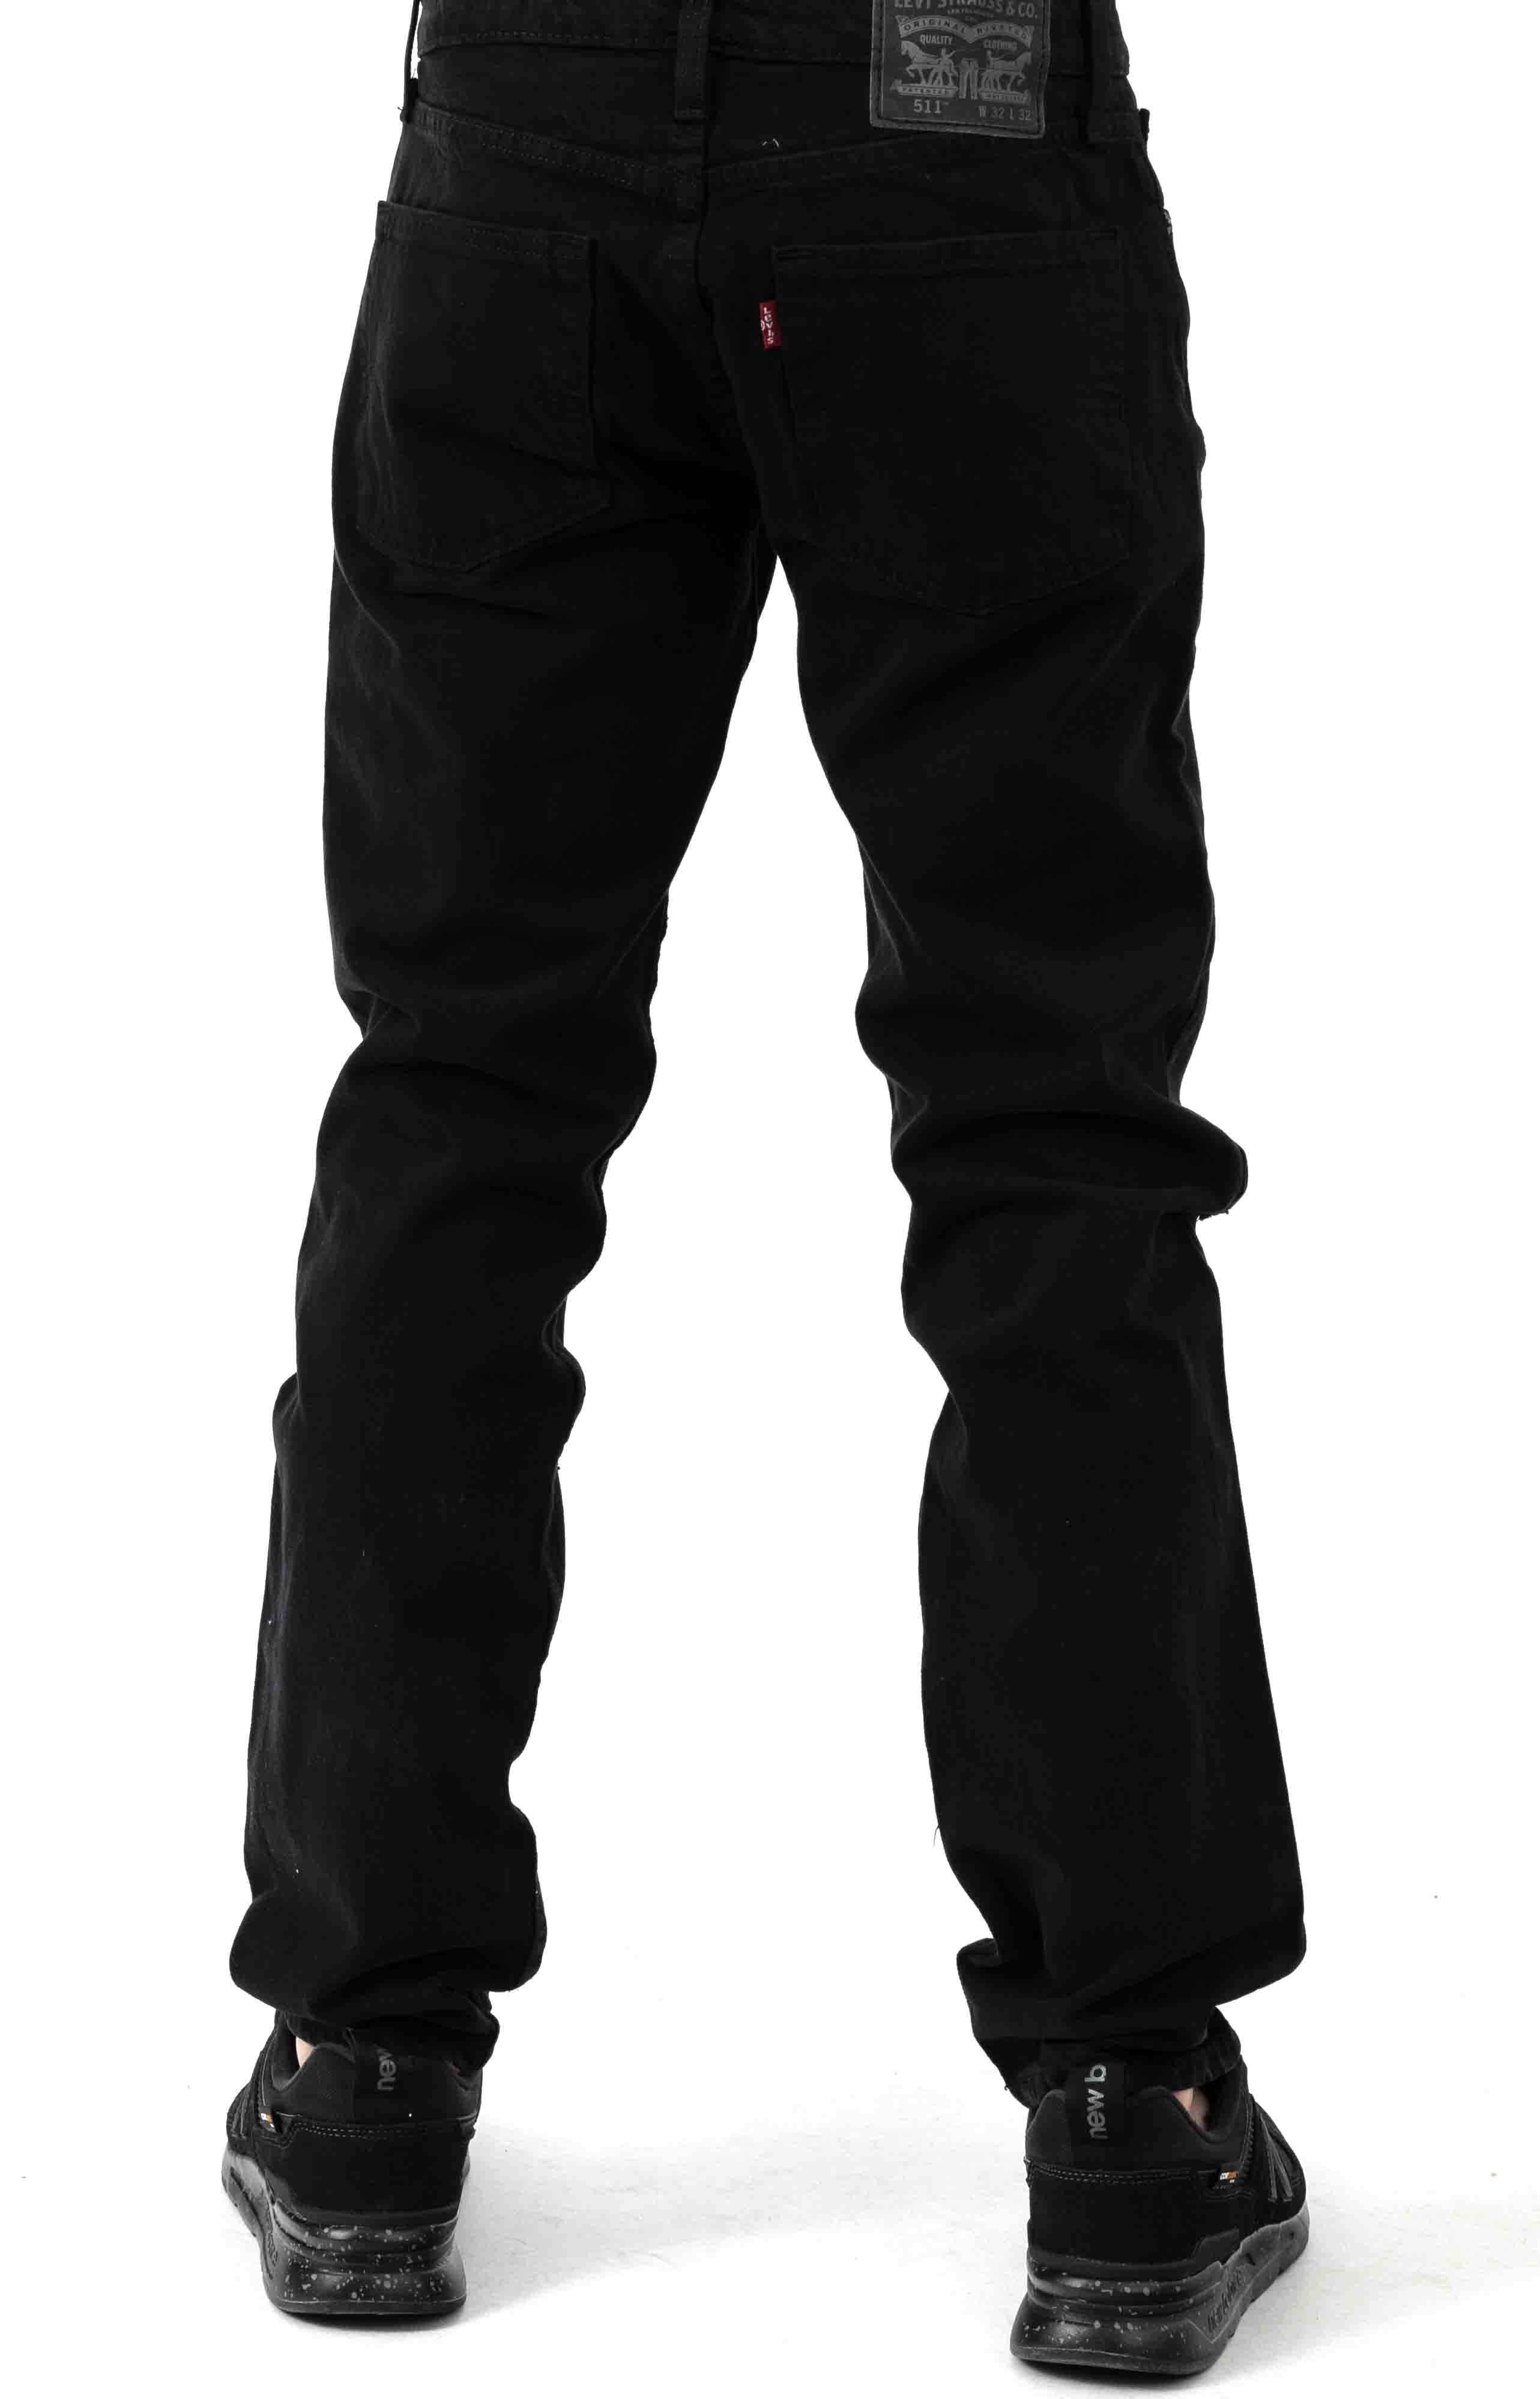 (4511-4481) 511 Slim Fit Jeans - Charred Marshmellow DY 3